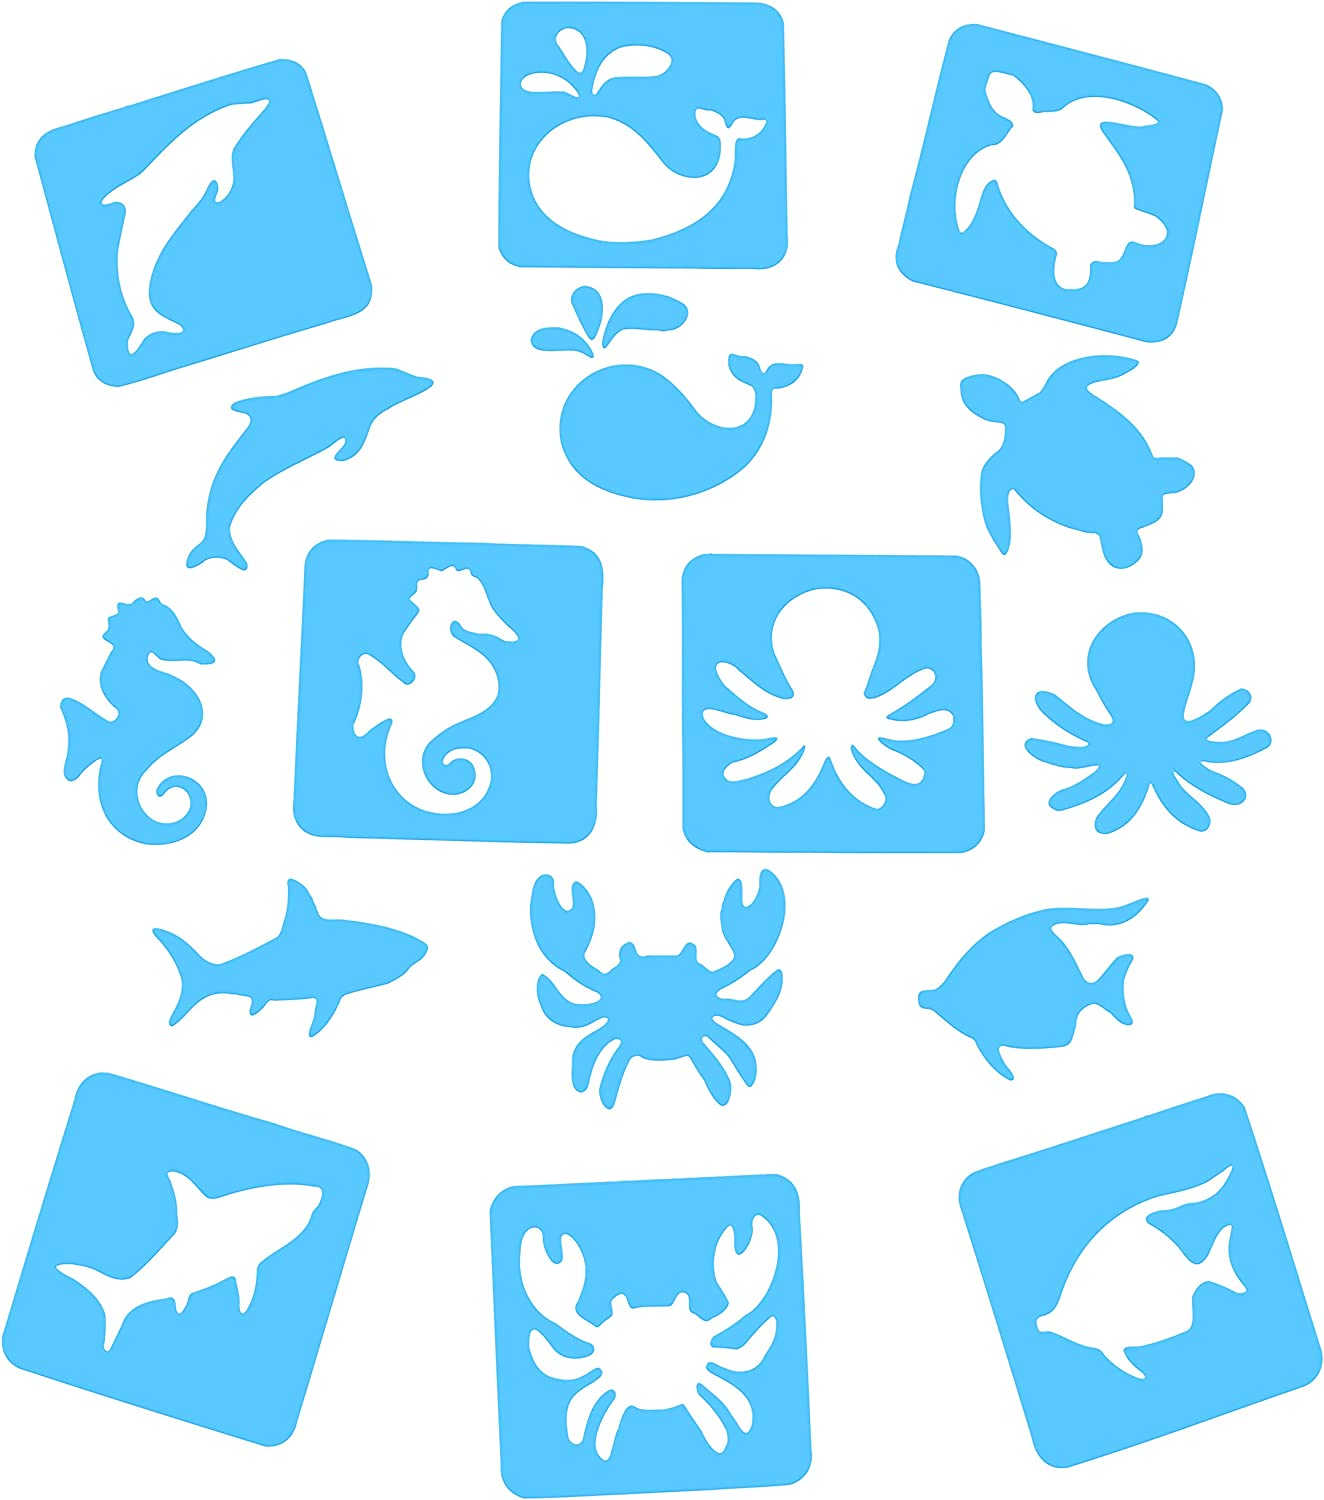 Magnetic Stencils for Kids - Ocean Stencils - 8 Great Stencils for Toddlers as The Large 5 inch by 5 inch Stencils are held in Place for Easy use (Magnetic Easel and Whiteboard not Included)